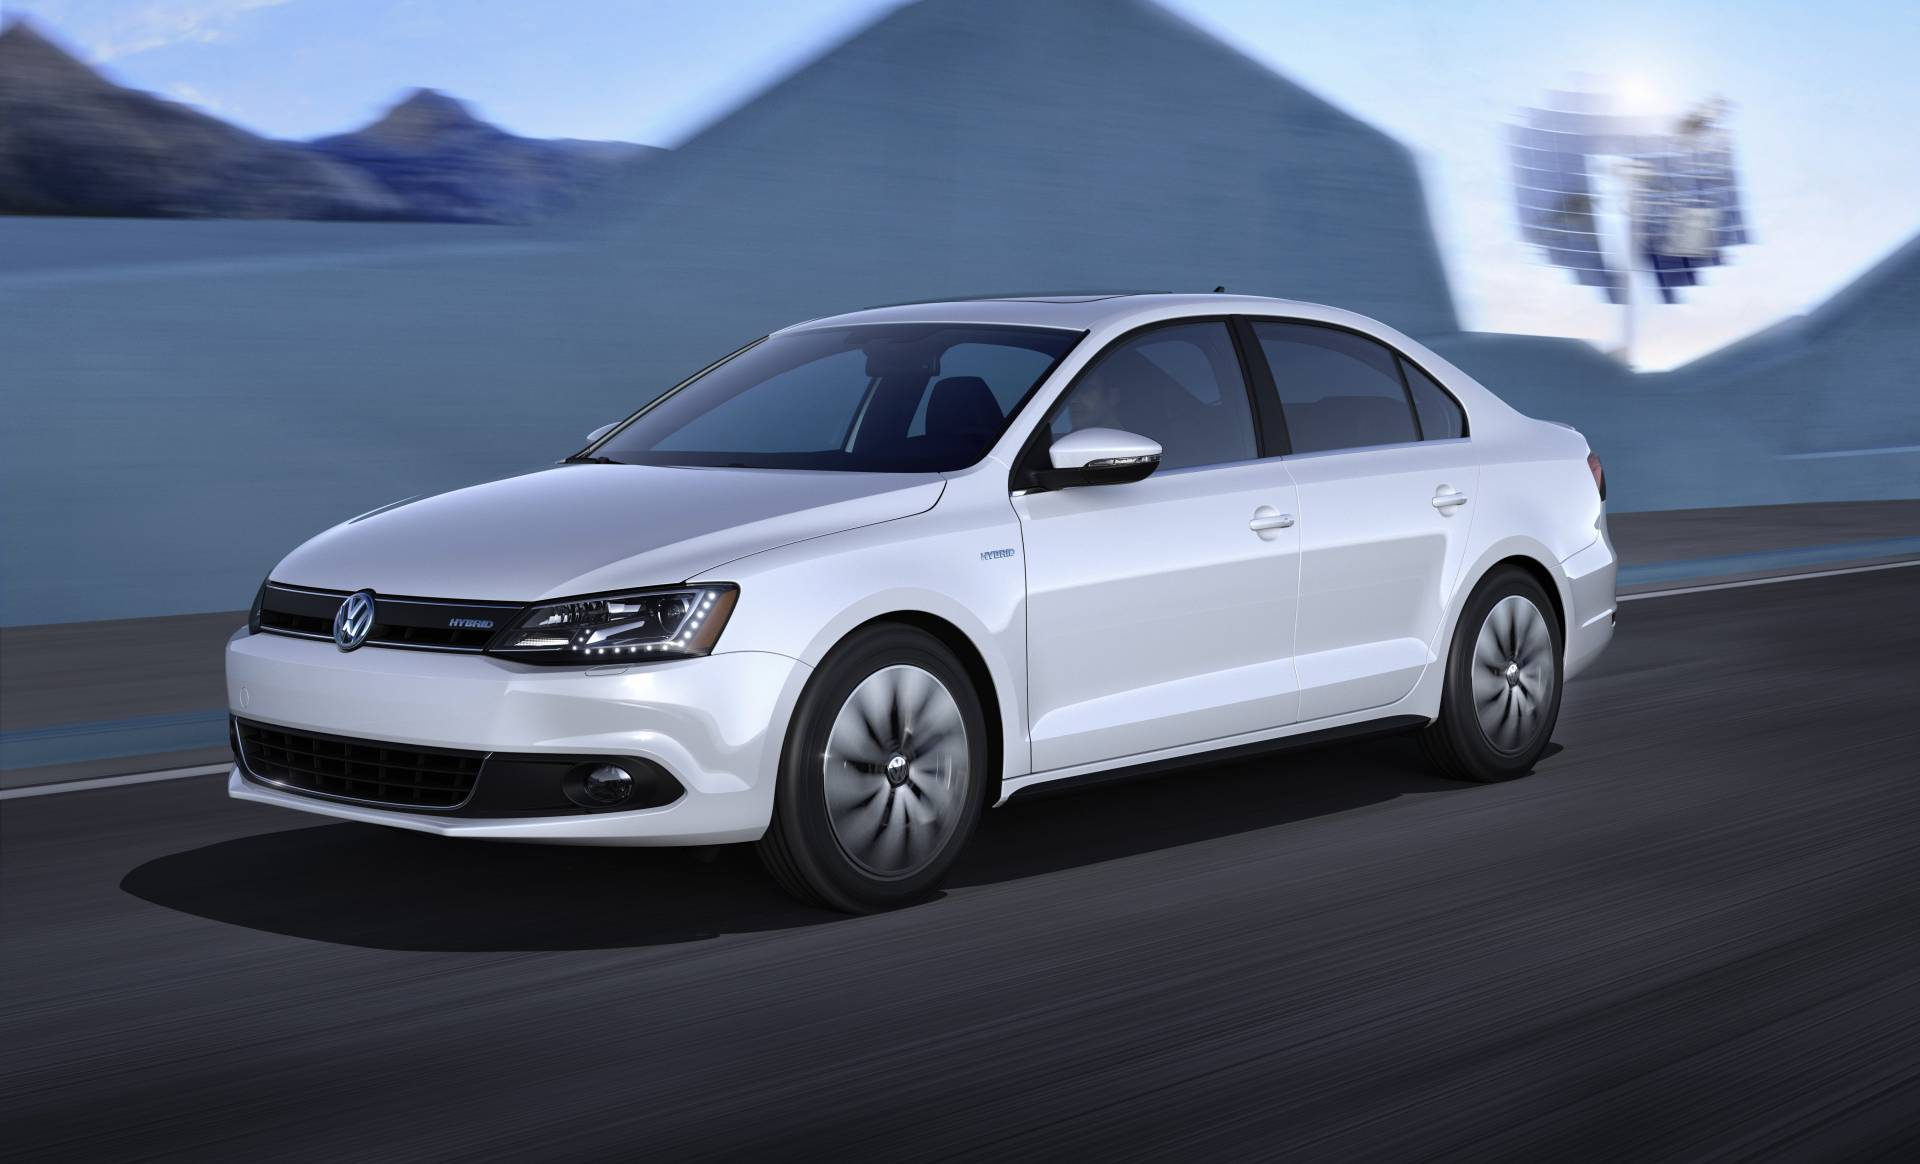 2013 volkswagen jetta news and information. Black Bedroom Furniture Sets. Home Design Ideas